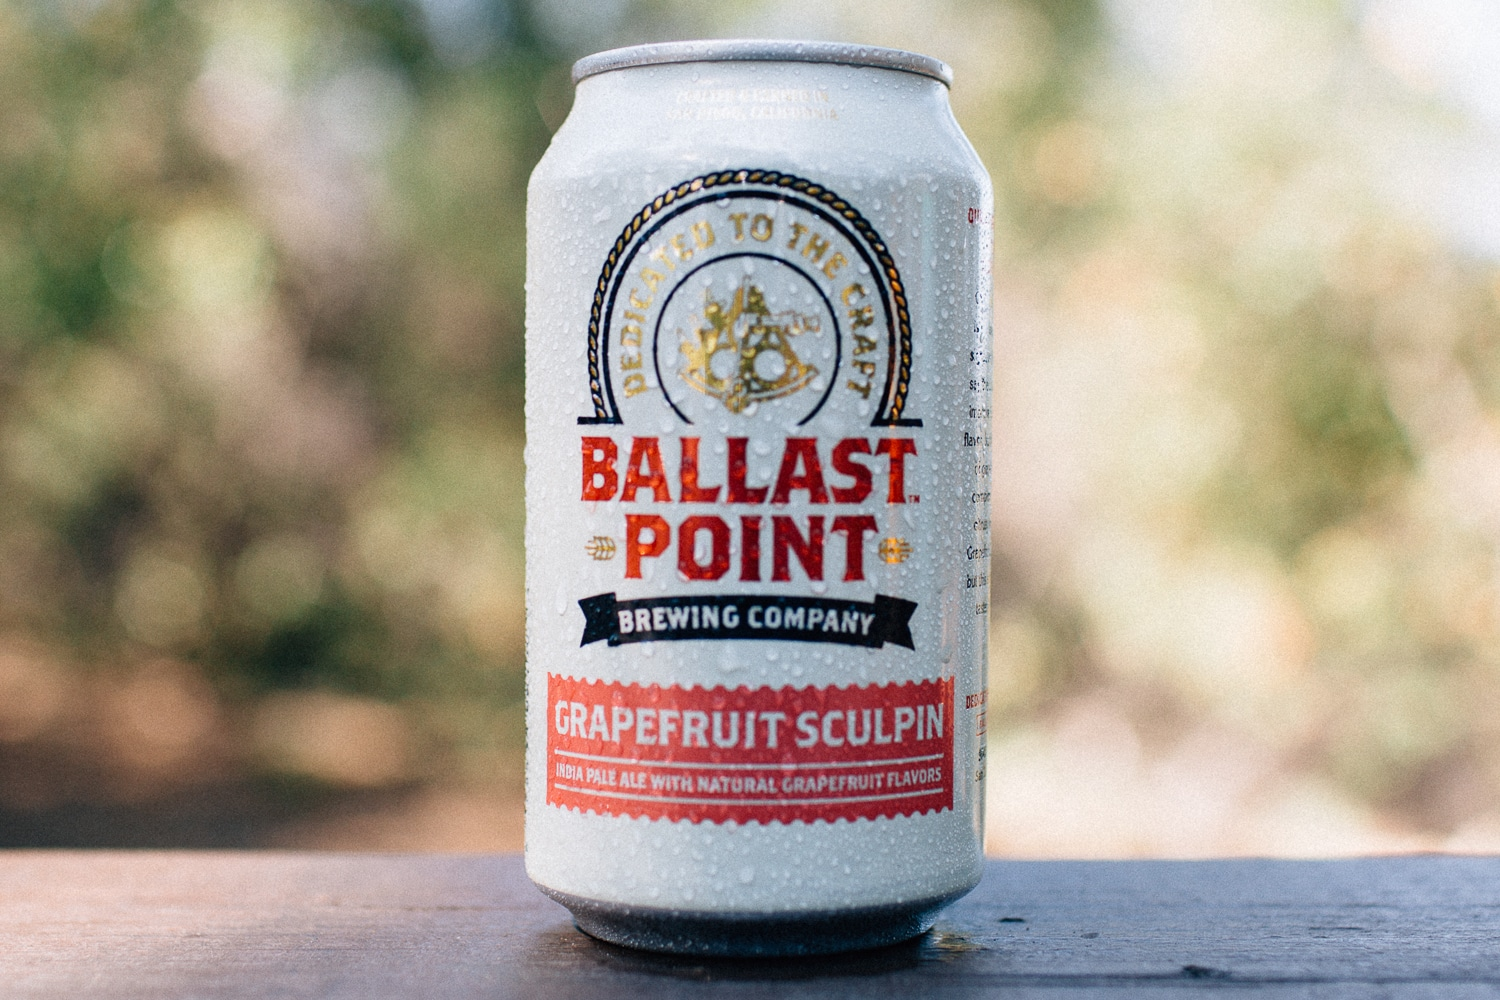 Grapefruit Sculpin IPA by Ballast Point